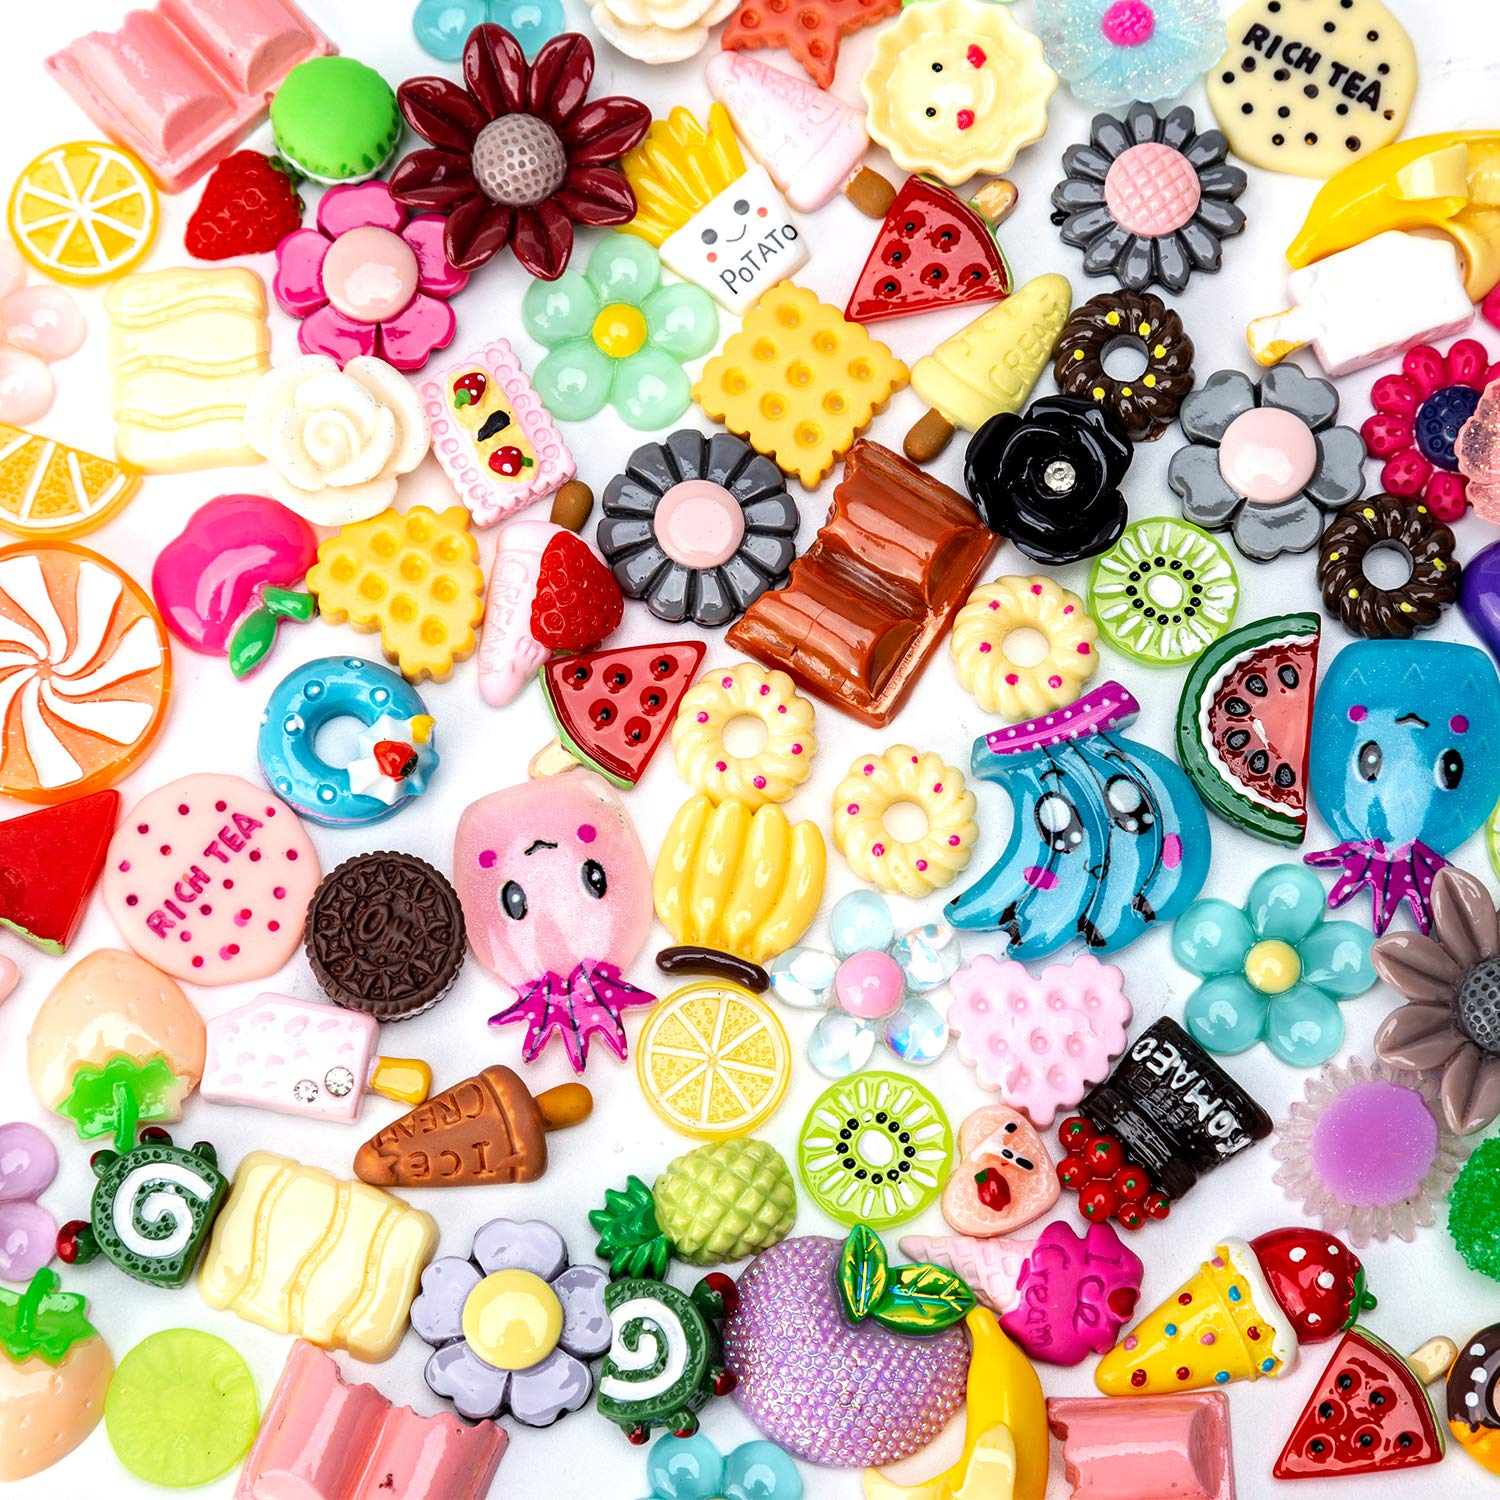 AIEX 100 Pieces Charms for Slime Cute Set Mixed Fruit, Cake, Candy Sweets Resin Embellishments for Handmade Scrapbooking DIY Crafts Making